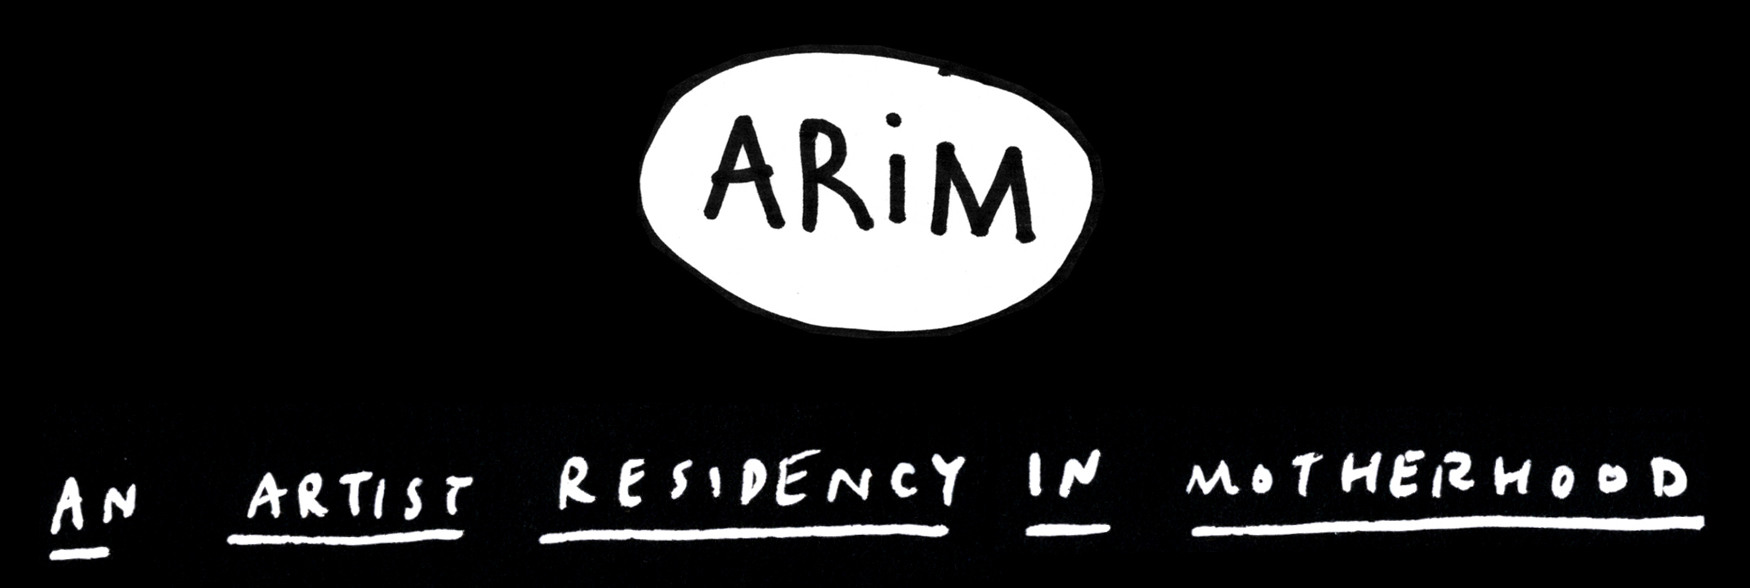 A new kind of collaboration. Currently devising a one year, self-directed residency through ARIM.  September 2016.